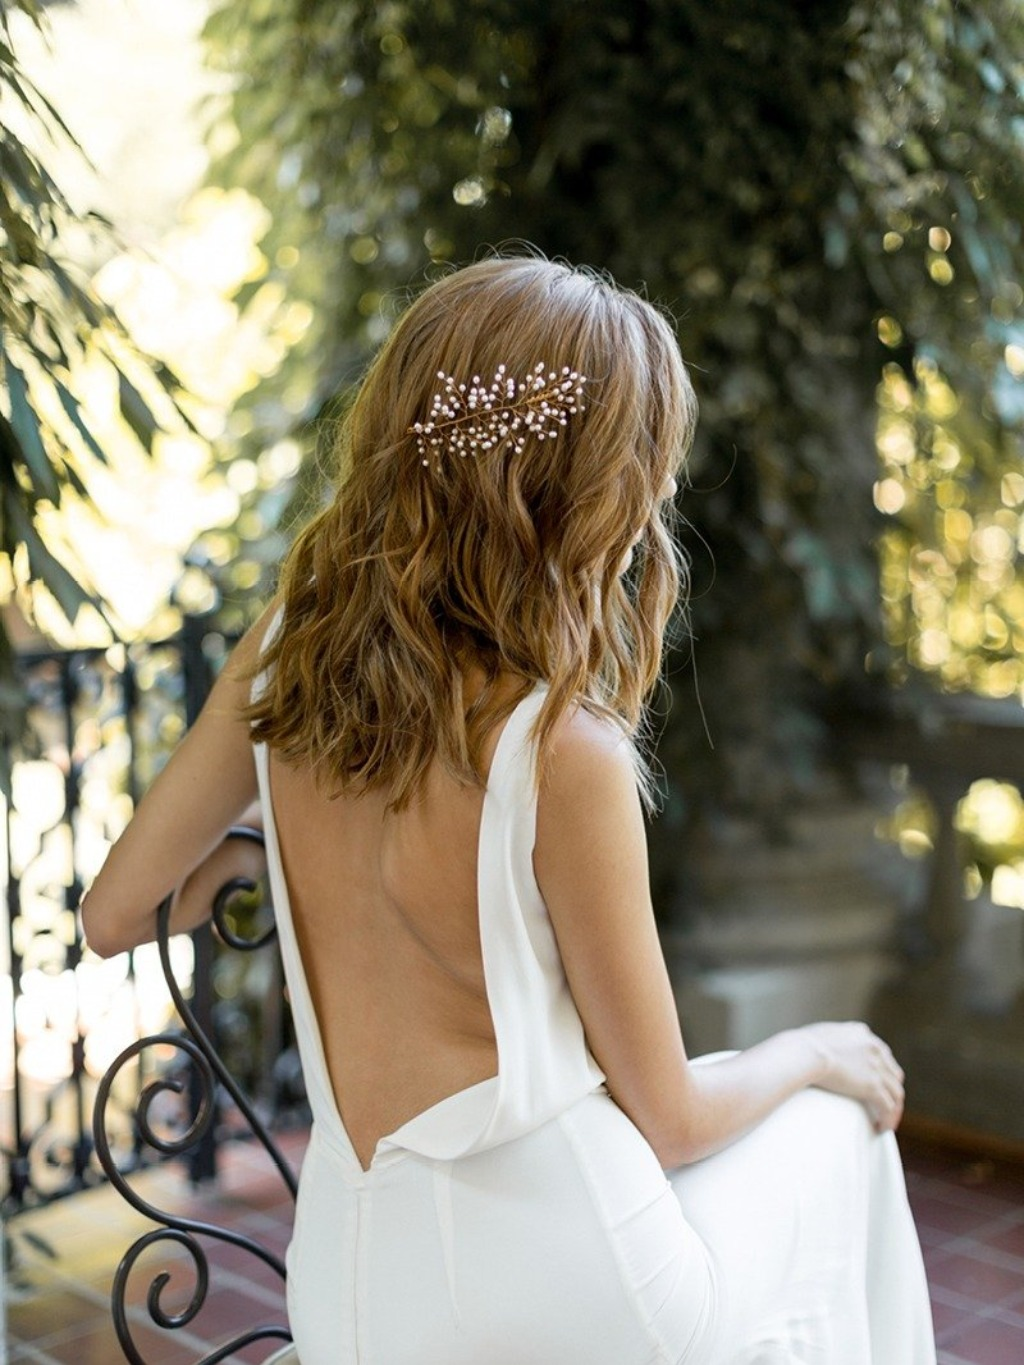 Backless dresses are sensational, simple, and so, so sexy.